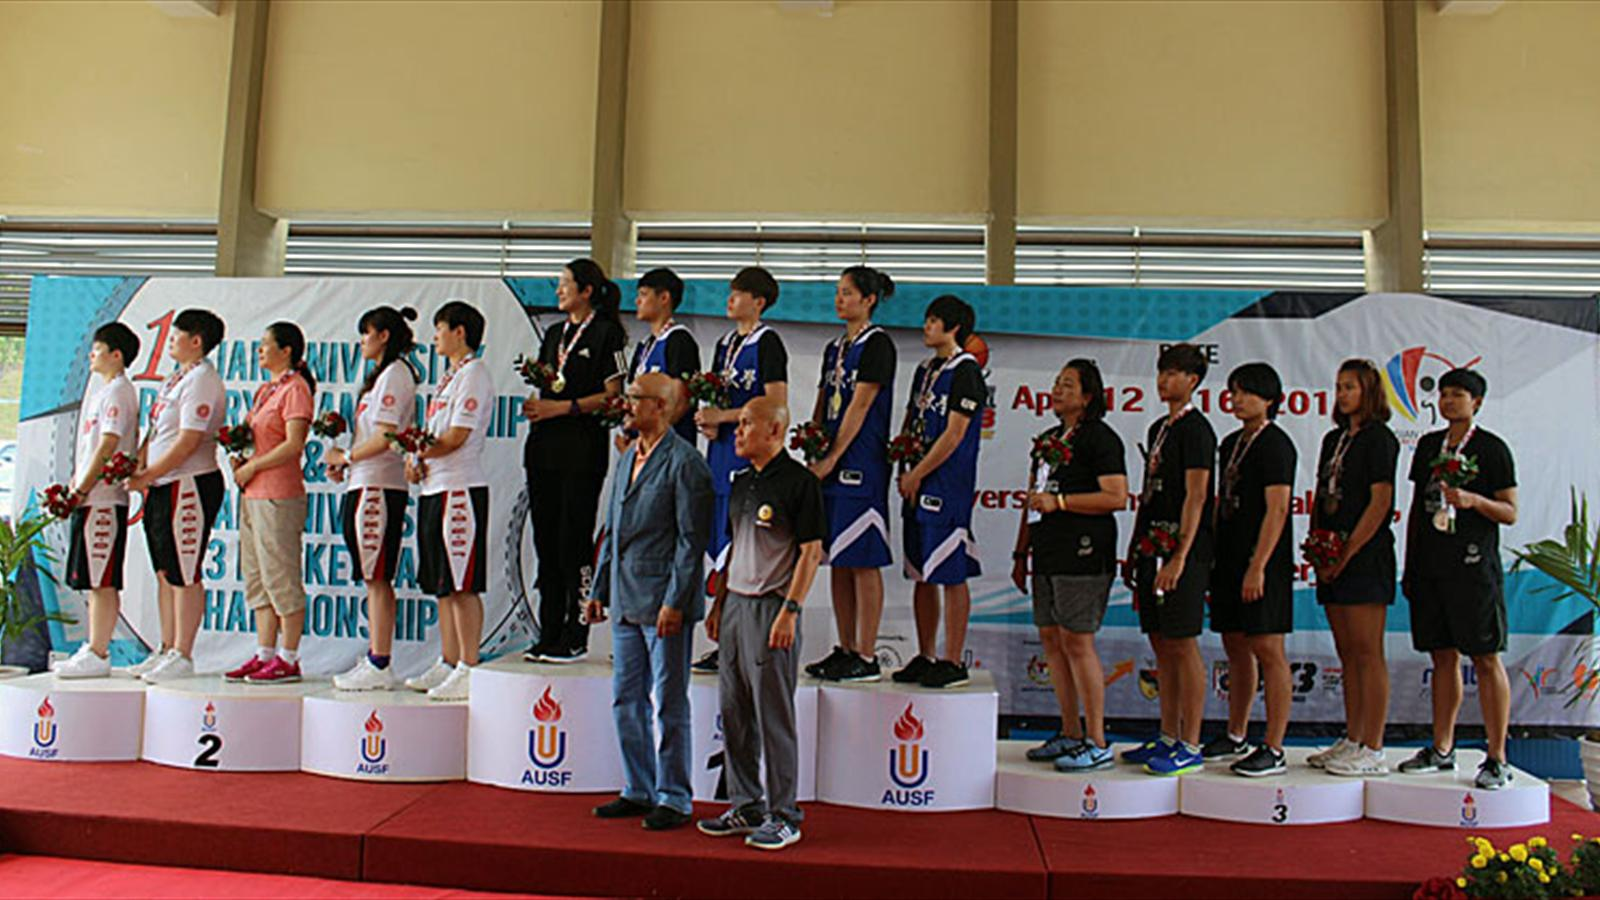 1st auac 3rd aubc 3x3 victory and closing ceremony - University league tables french ...